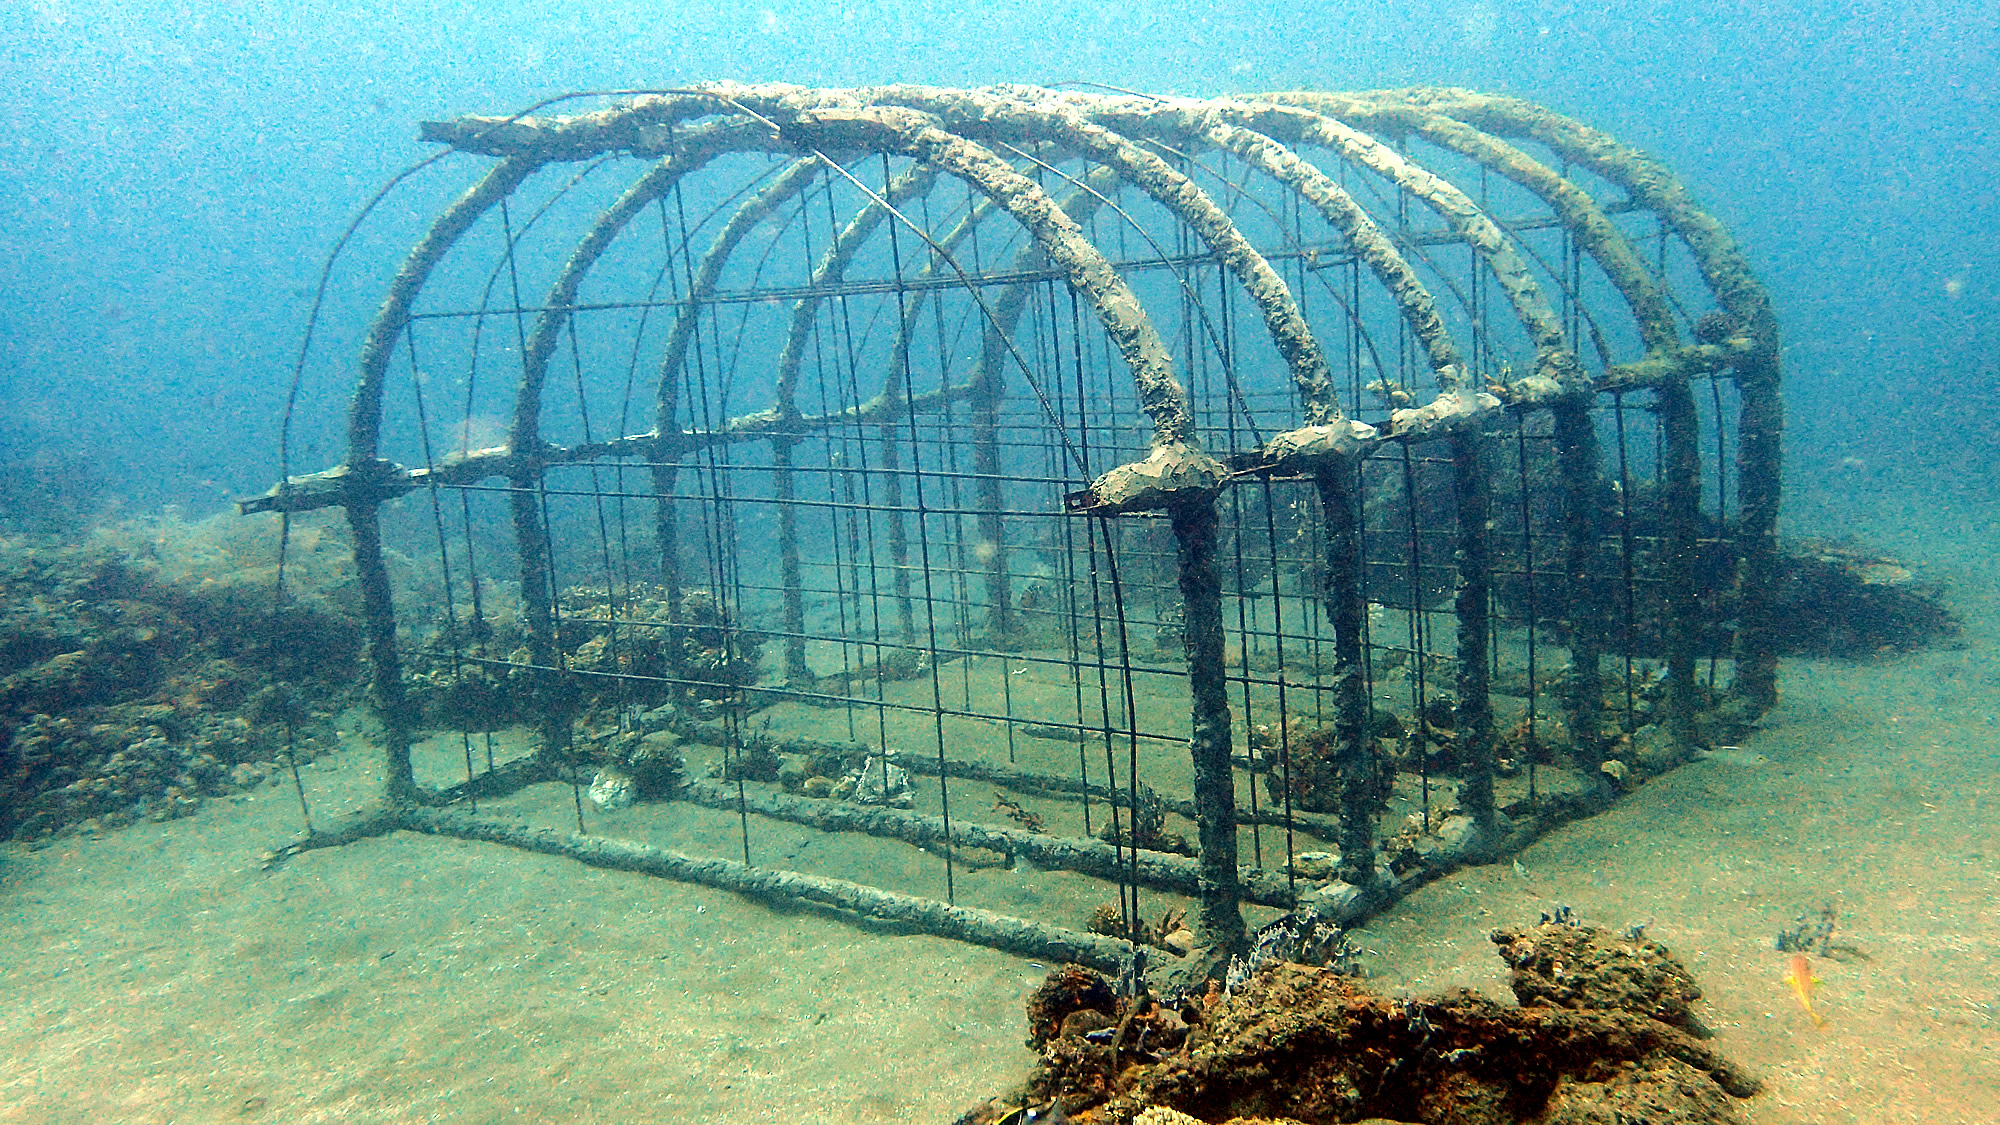 Reef Project